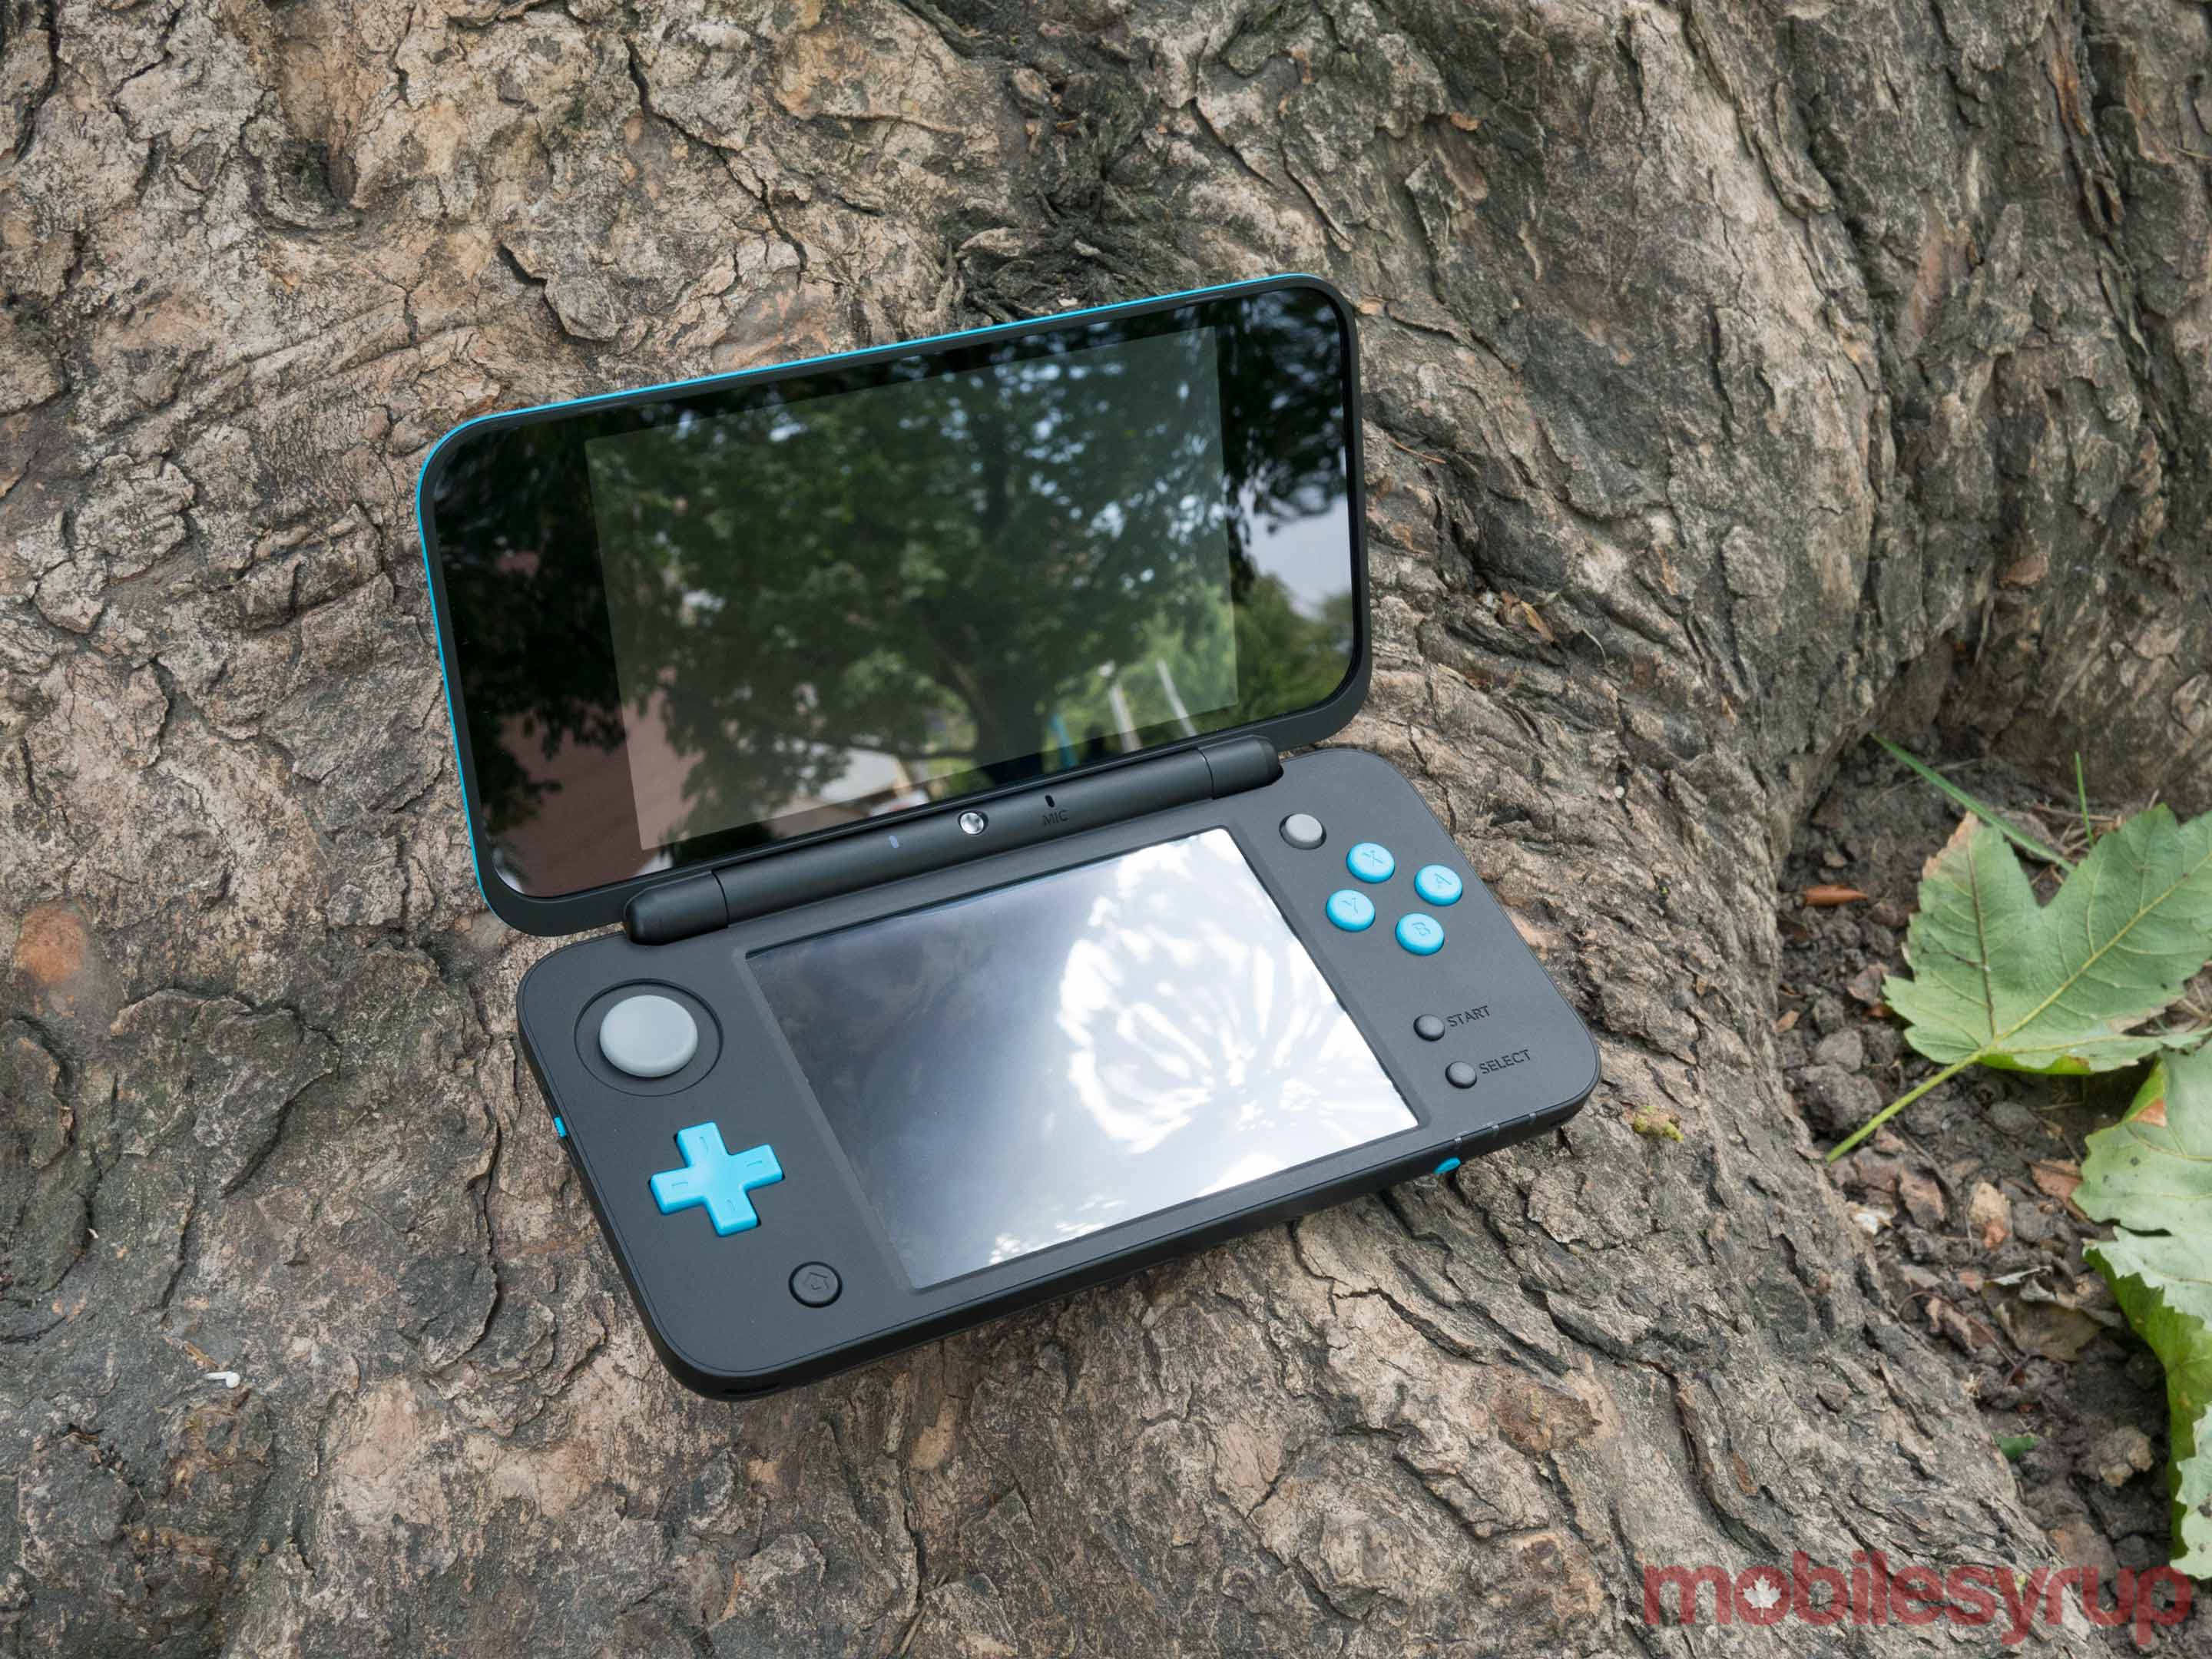 Nintendo 2DS XL on tree